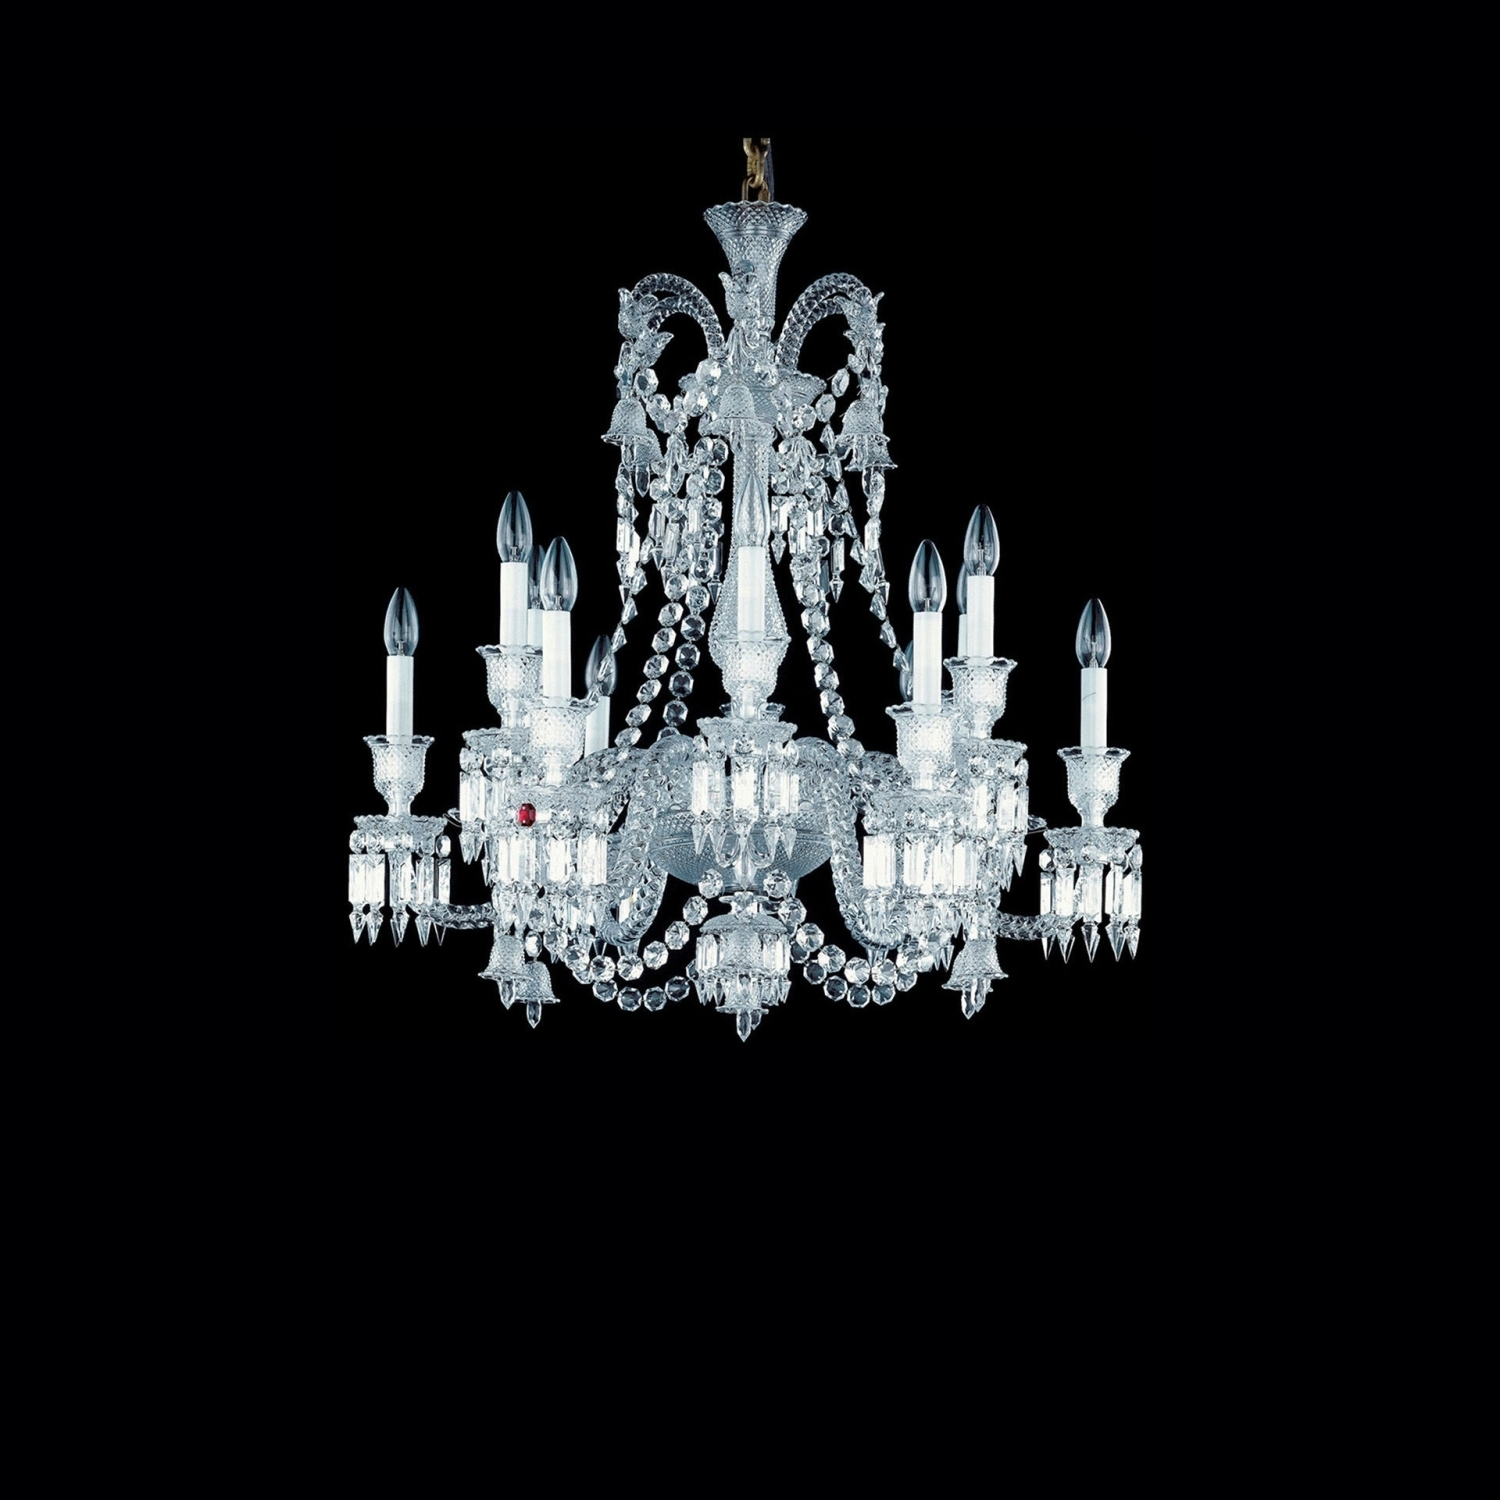 Best And Newest Chandelier Clear 12L Baccarat Zenith 2606555 Pertaining To Short Chandelier Lights (View 1 of 15)